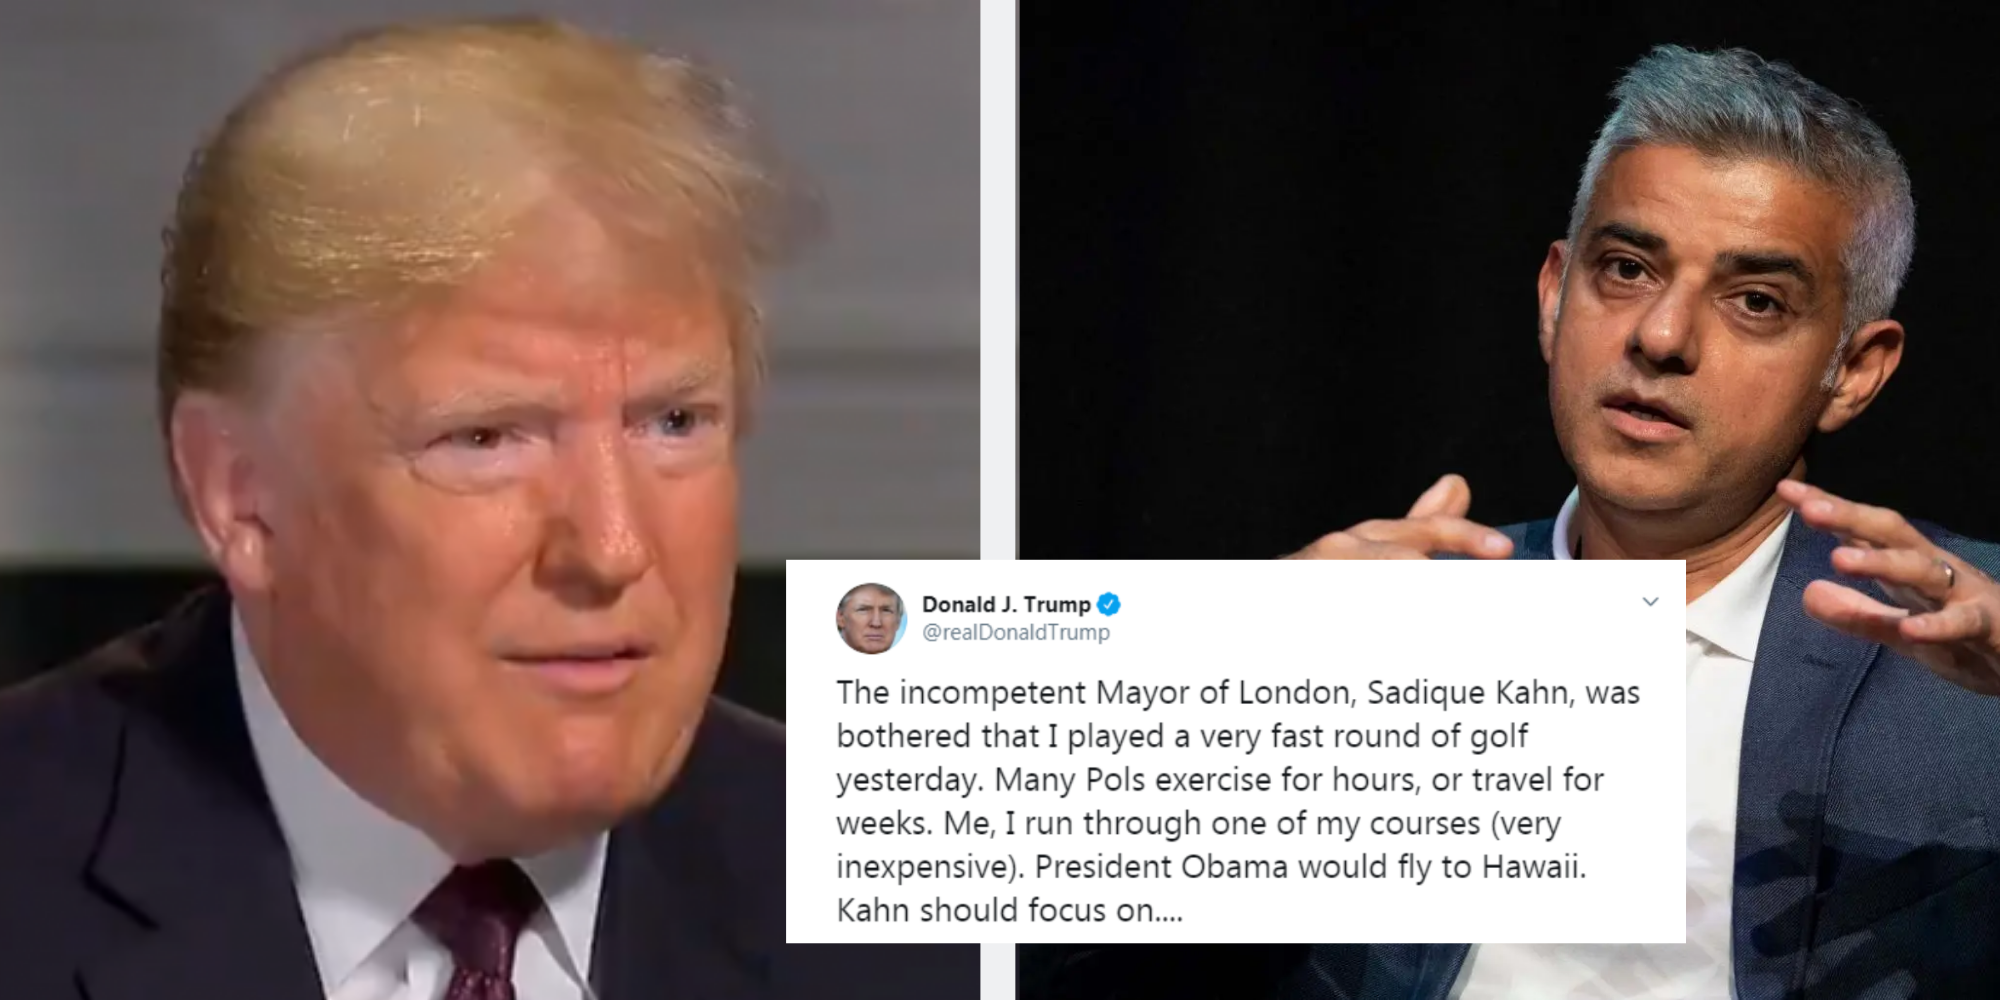 Trump tried to shade Sadiq Khan but just ended up proving he cannot spell